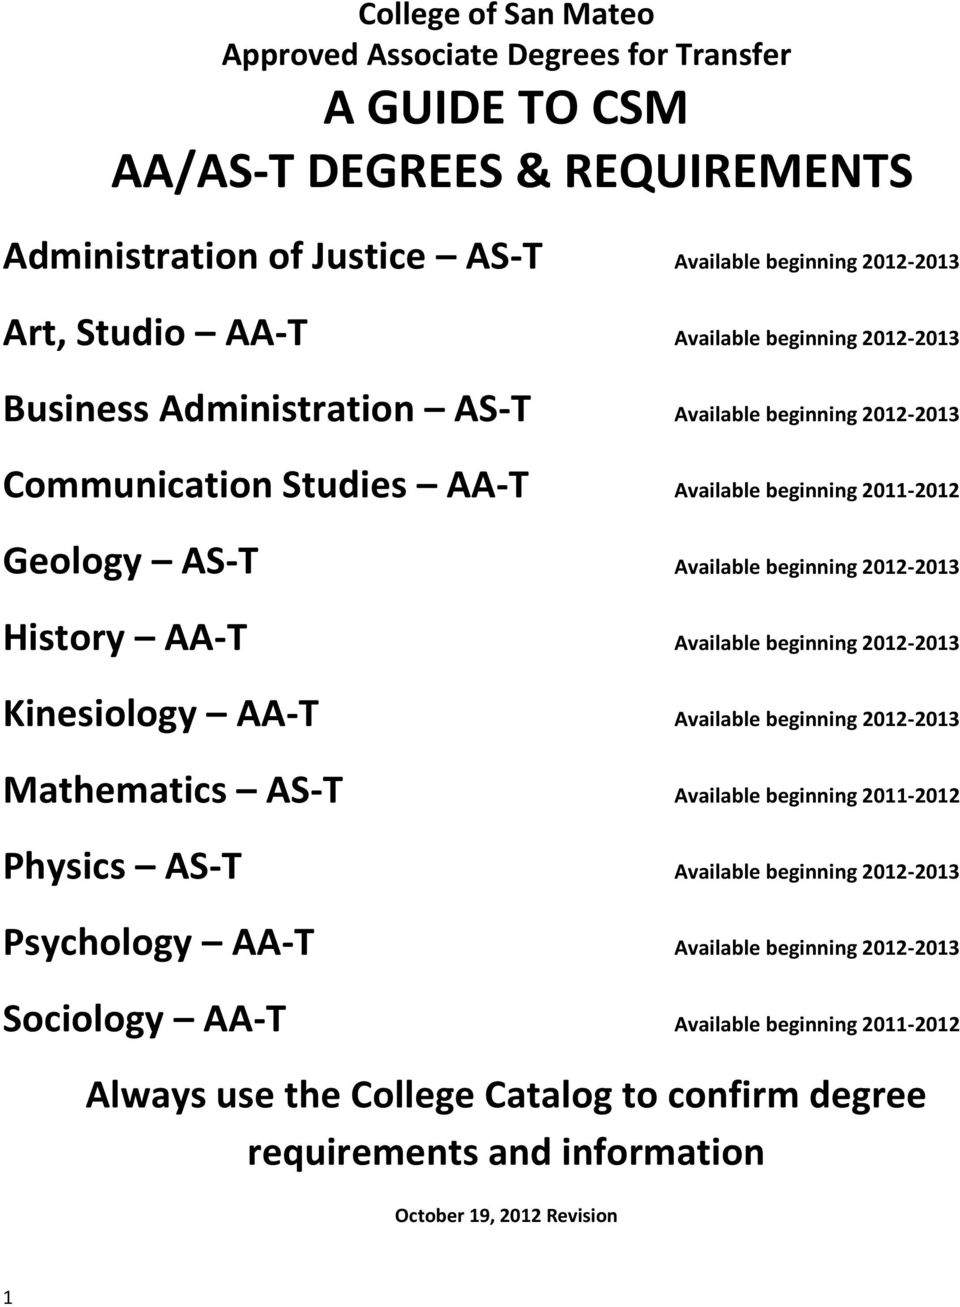 2012-2013 History AA-T Available beginning 2012-2013 Kinesiology AA-T Available beginning 2012-2013 Mathematics AS-T Available beginning 2011-2012 Physics AS-T Available beginning